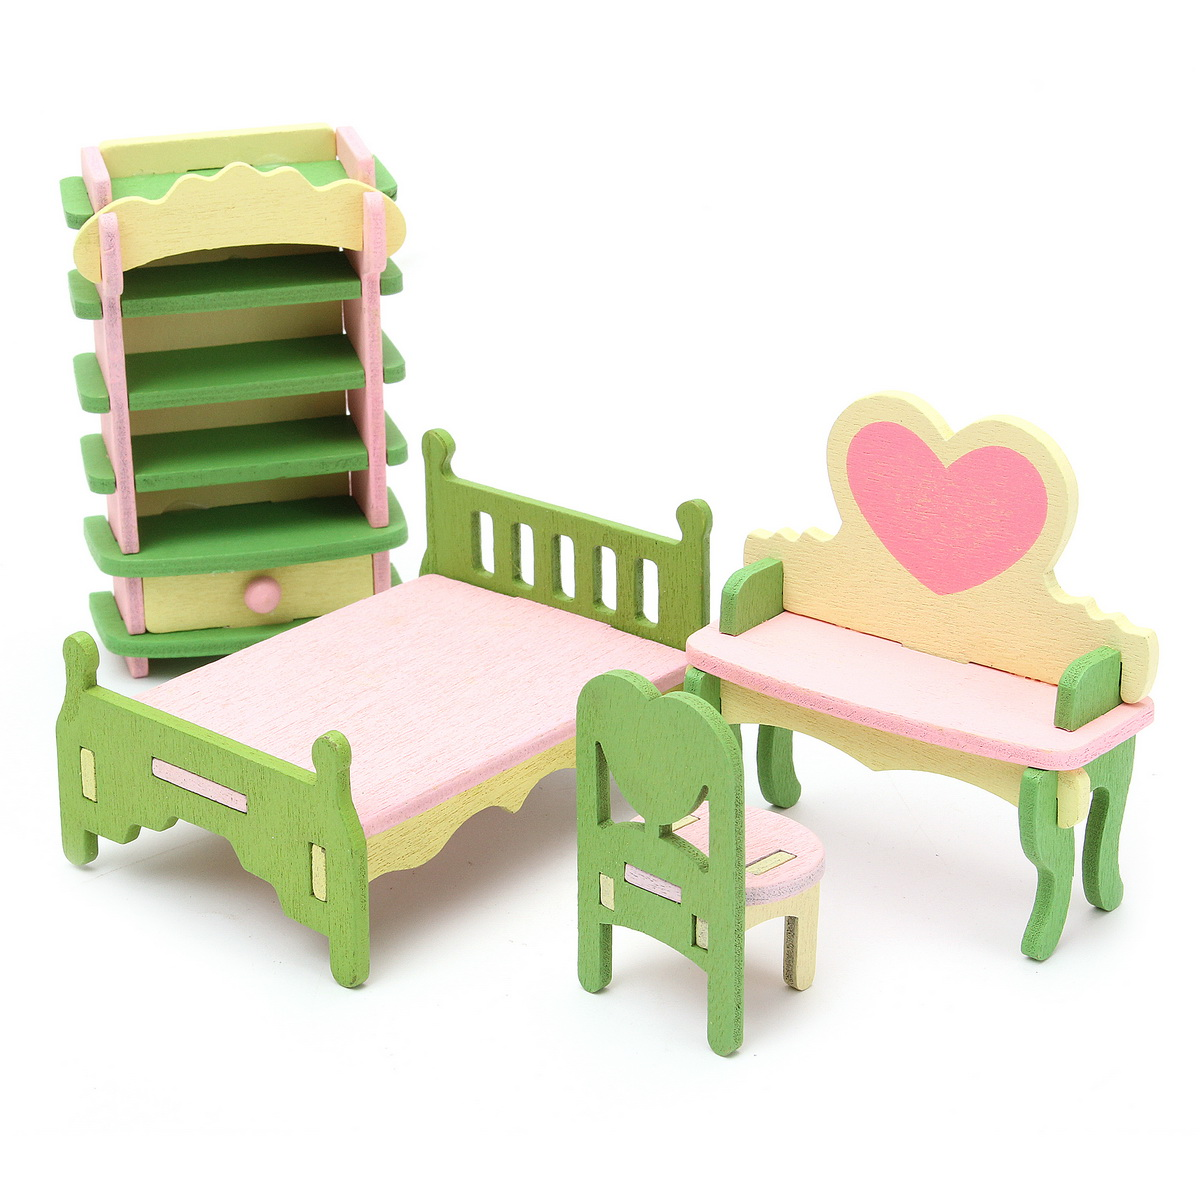 Wooden Furniture Dolls House Family Miniature 6 Set Room Child Kids Gift Toys Ebay